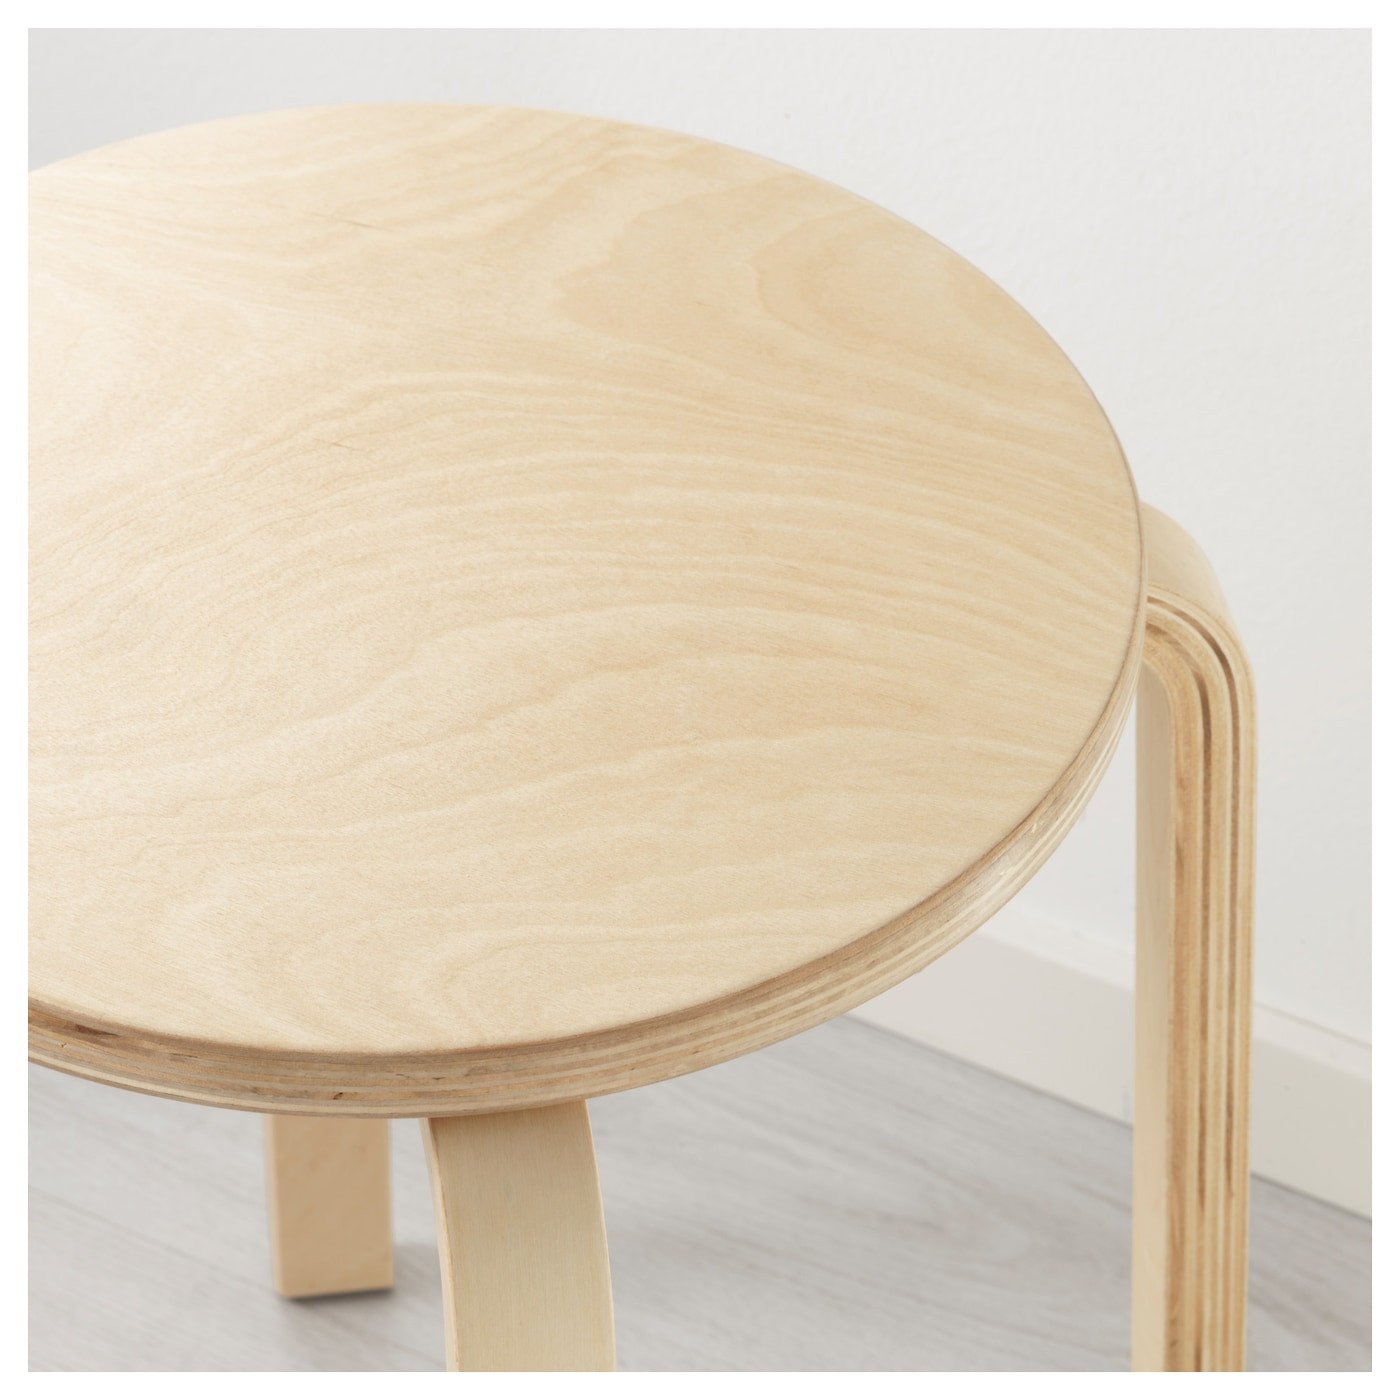 Plywood Furniture Frosta Stool Birch Plywood